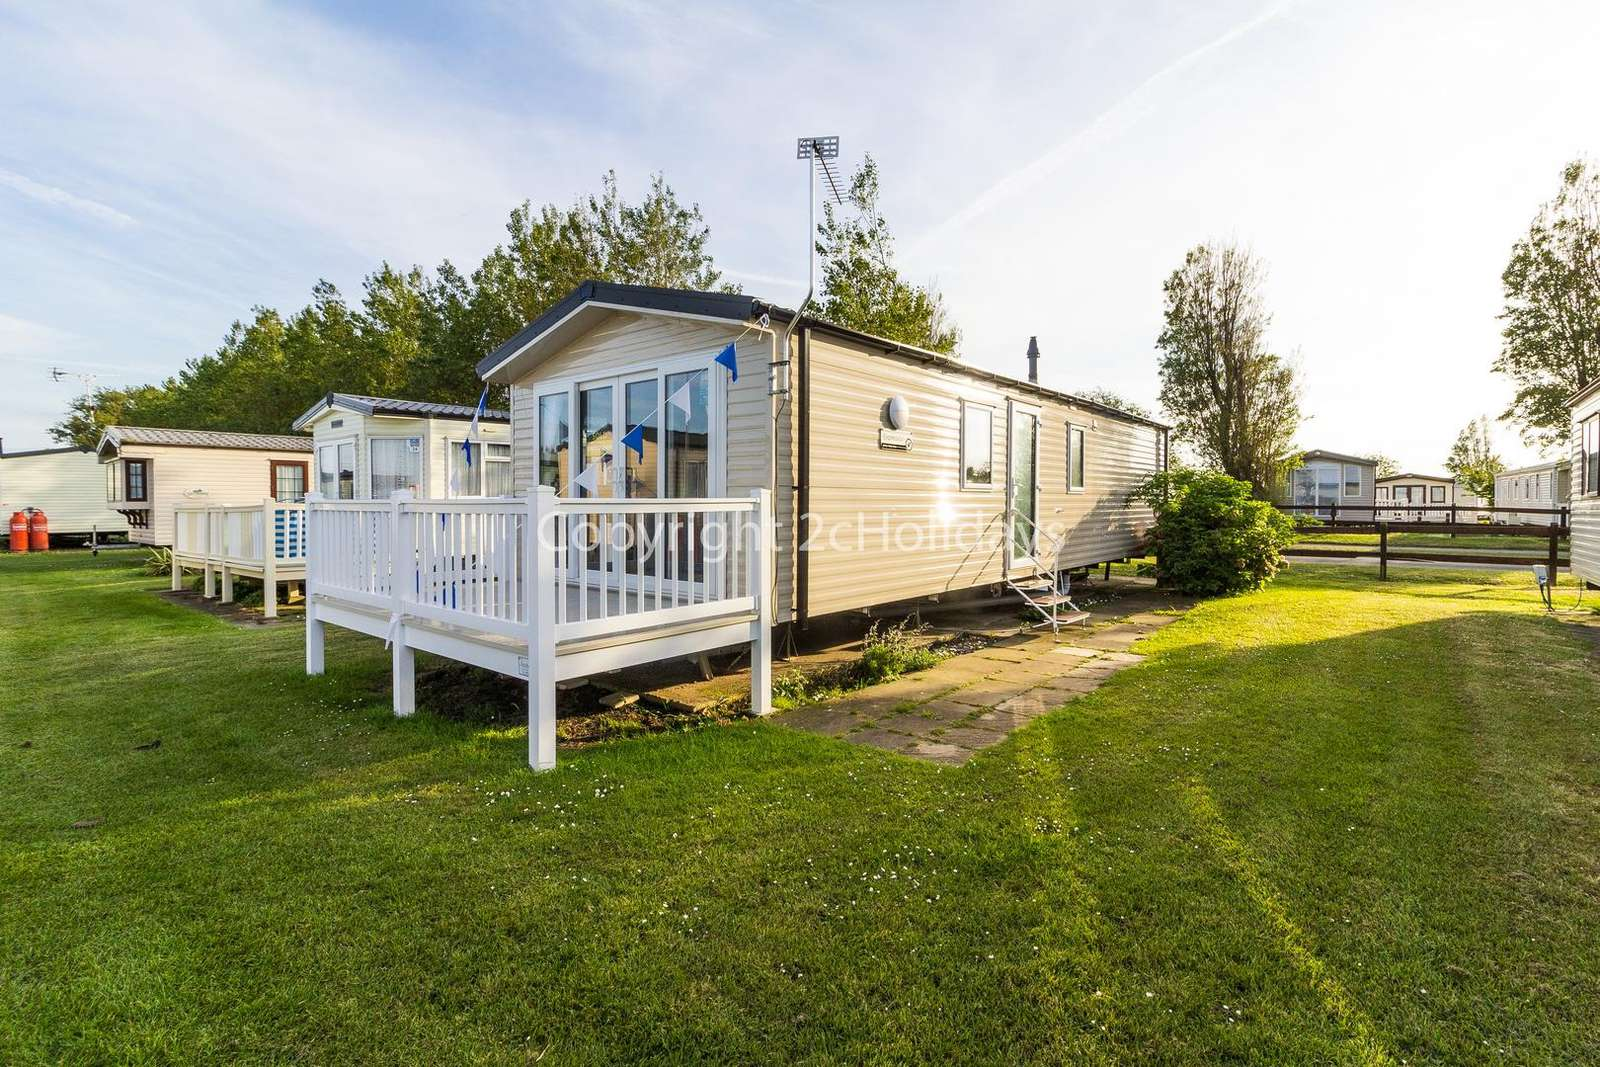 50027L – Lapwing area, 2 bed, 6 berth caravan with decking, D/G & C/H. Diamond rated. - property